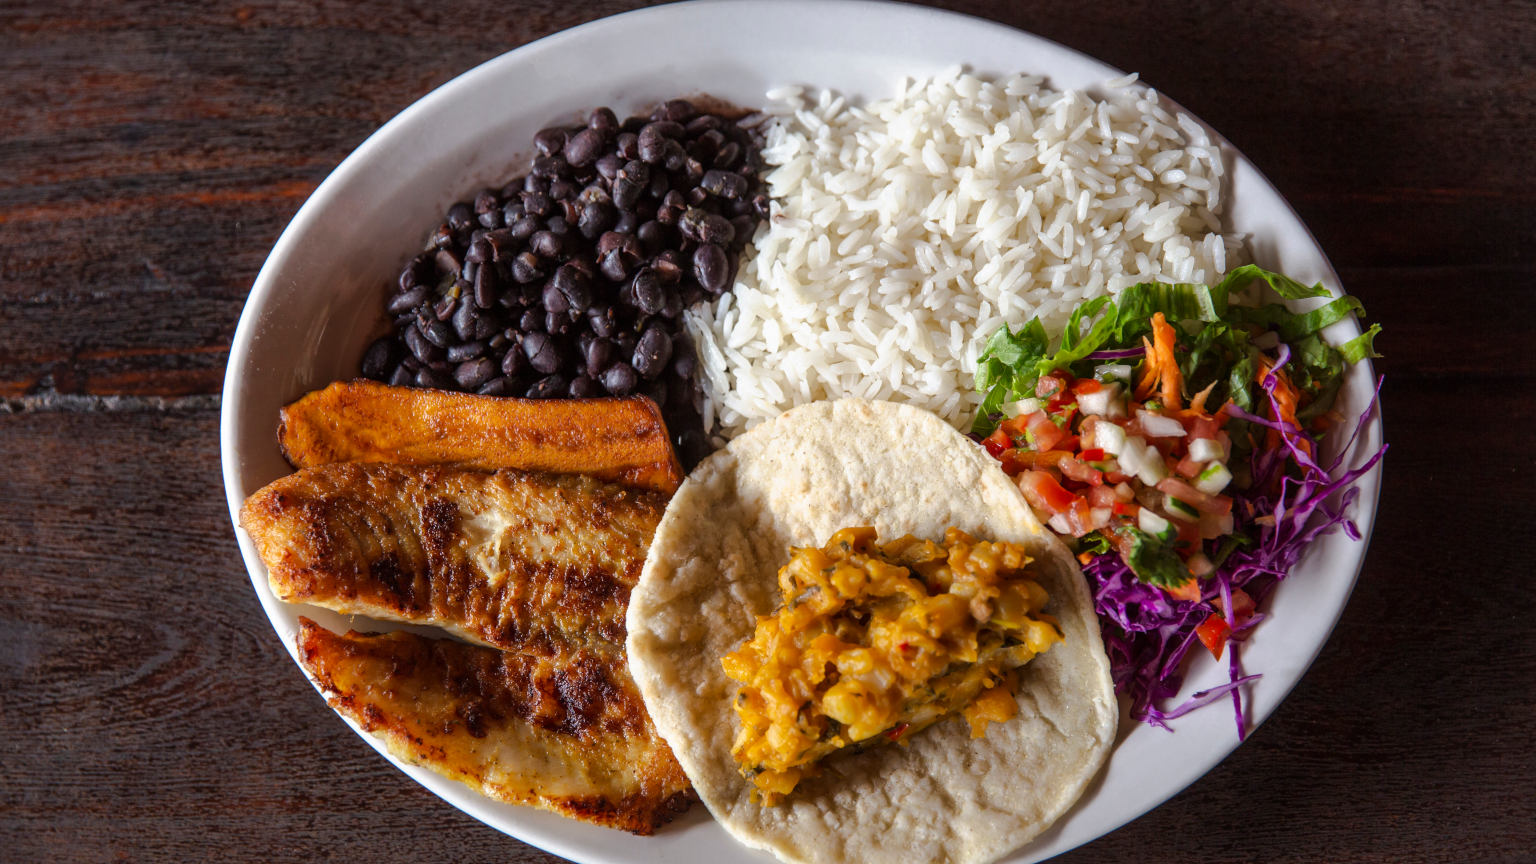 Costa-Rica-Lunch-Fish-Rice-Beans-Food-Plate